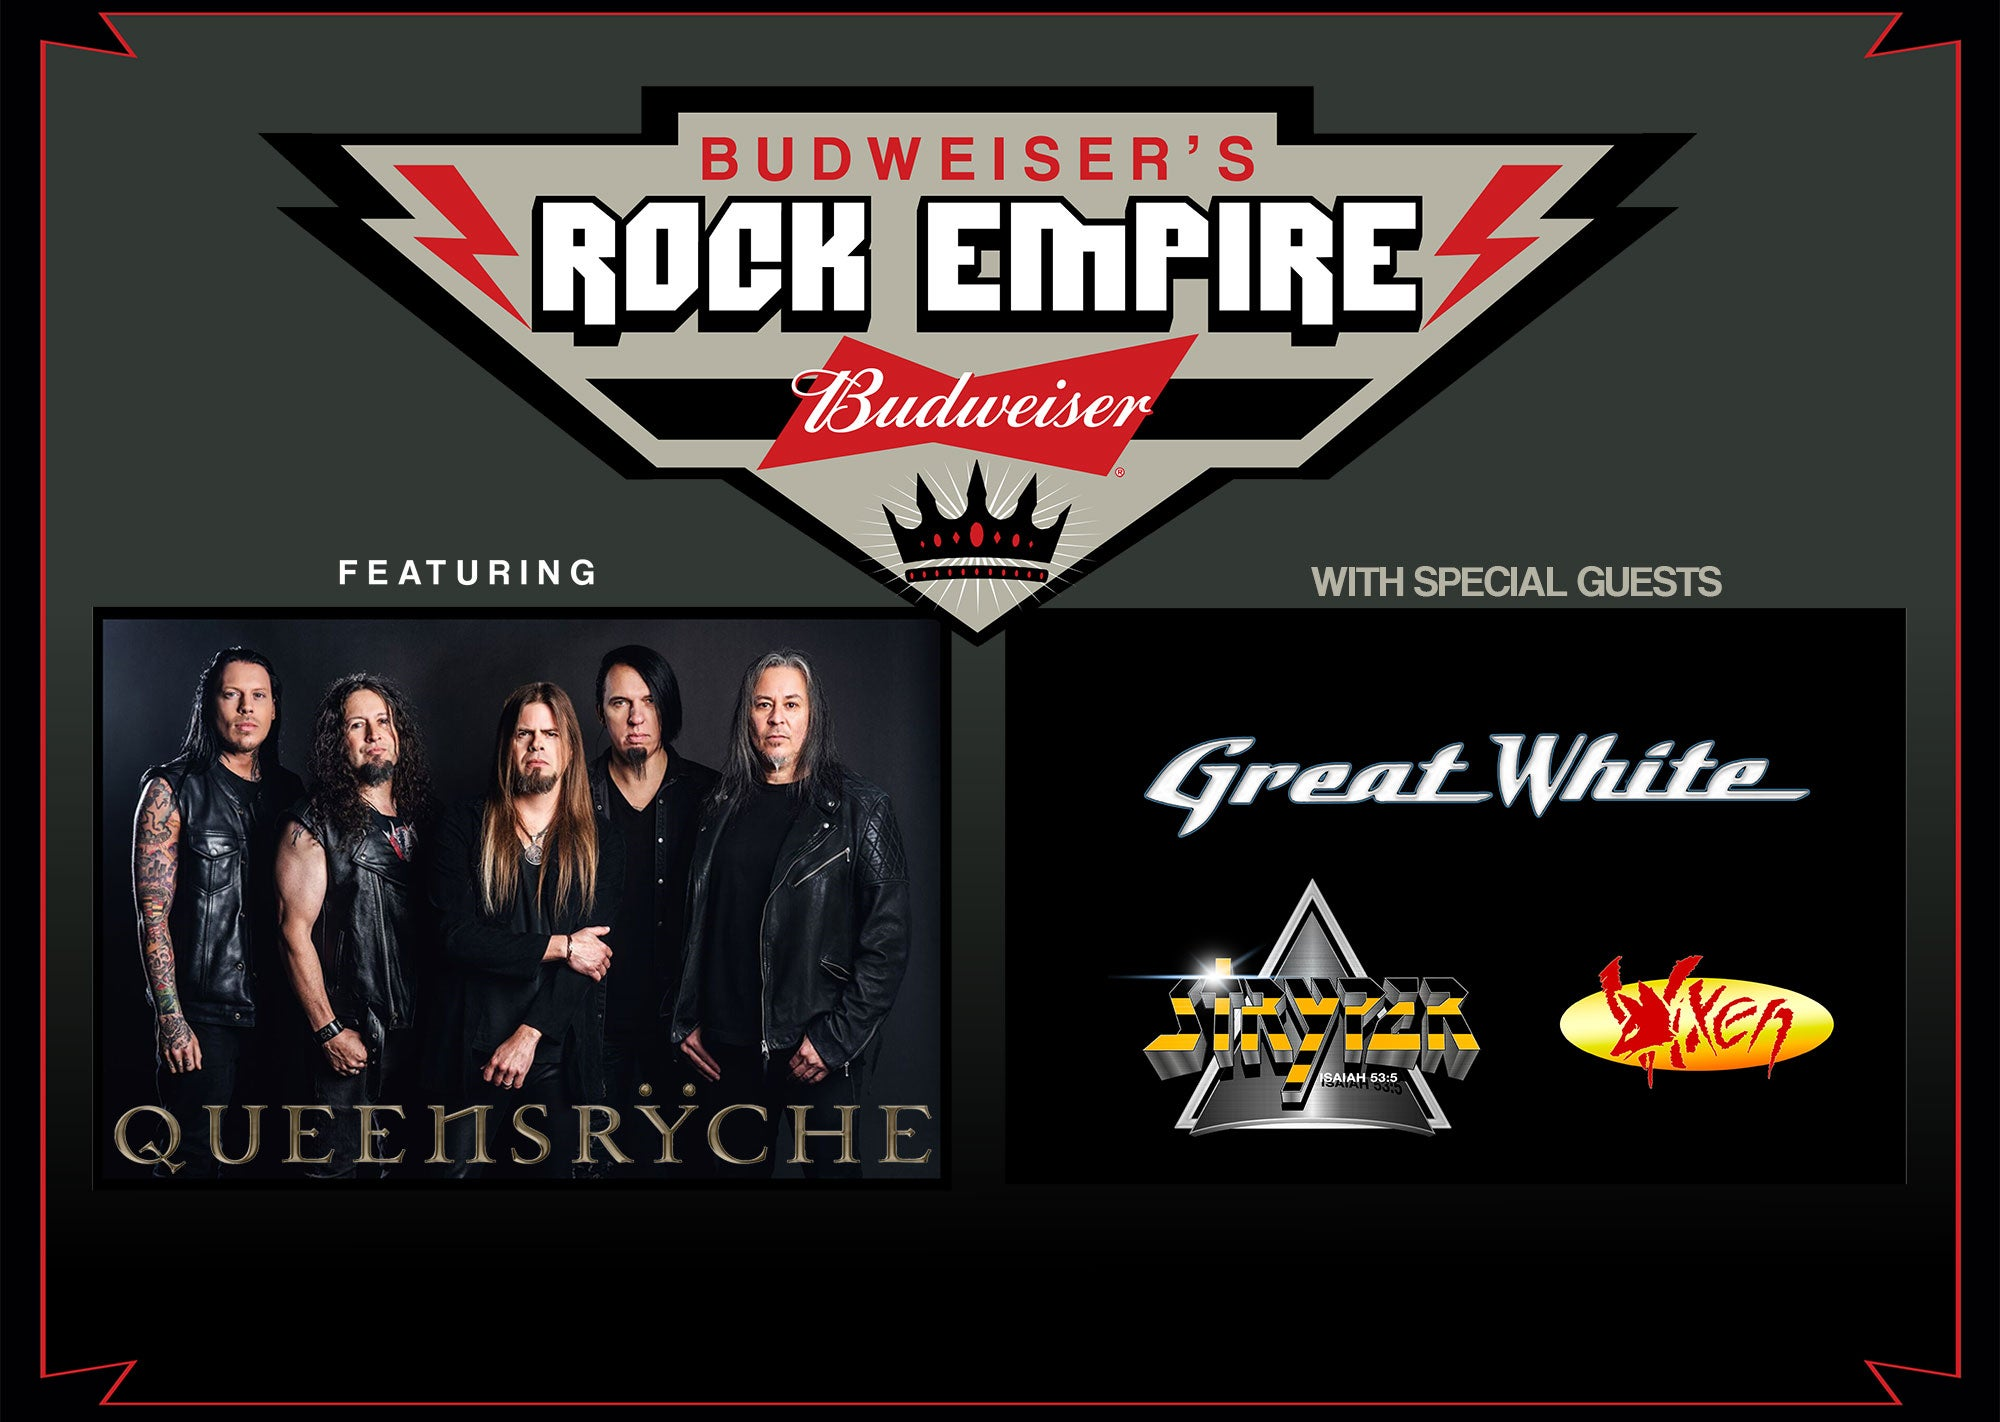 Queensryche with Great White, Stryper and Vixen